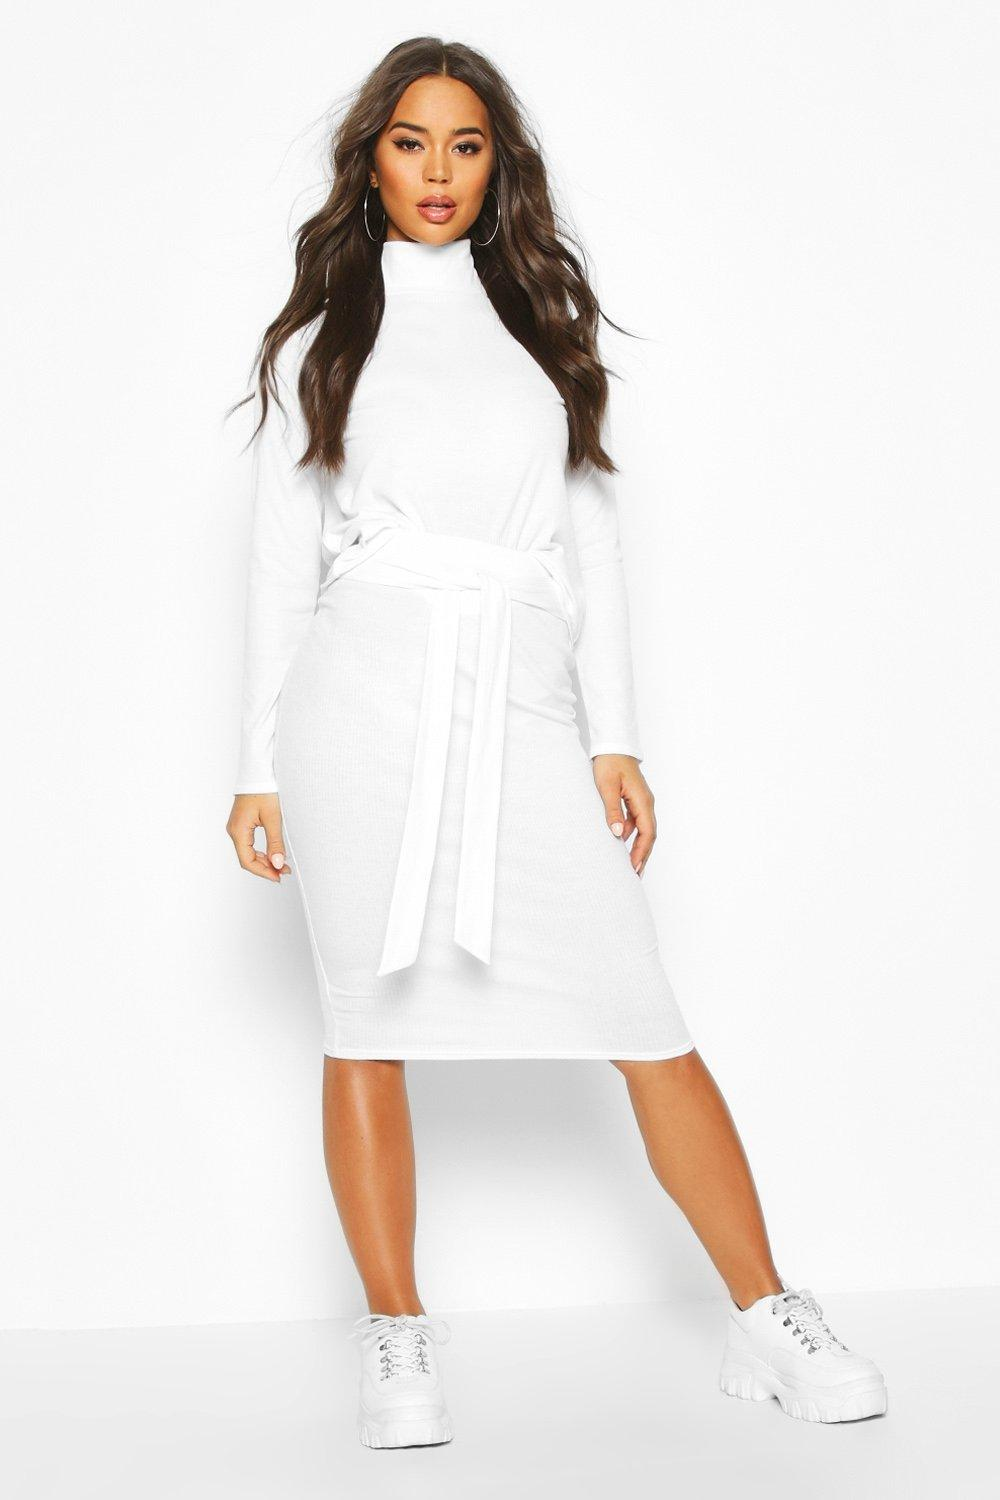 boohoo Soft Rib High Neck Top And Tie Waist Midi Skirt Co-Ord - Cream - 6, Cream